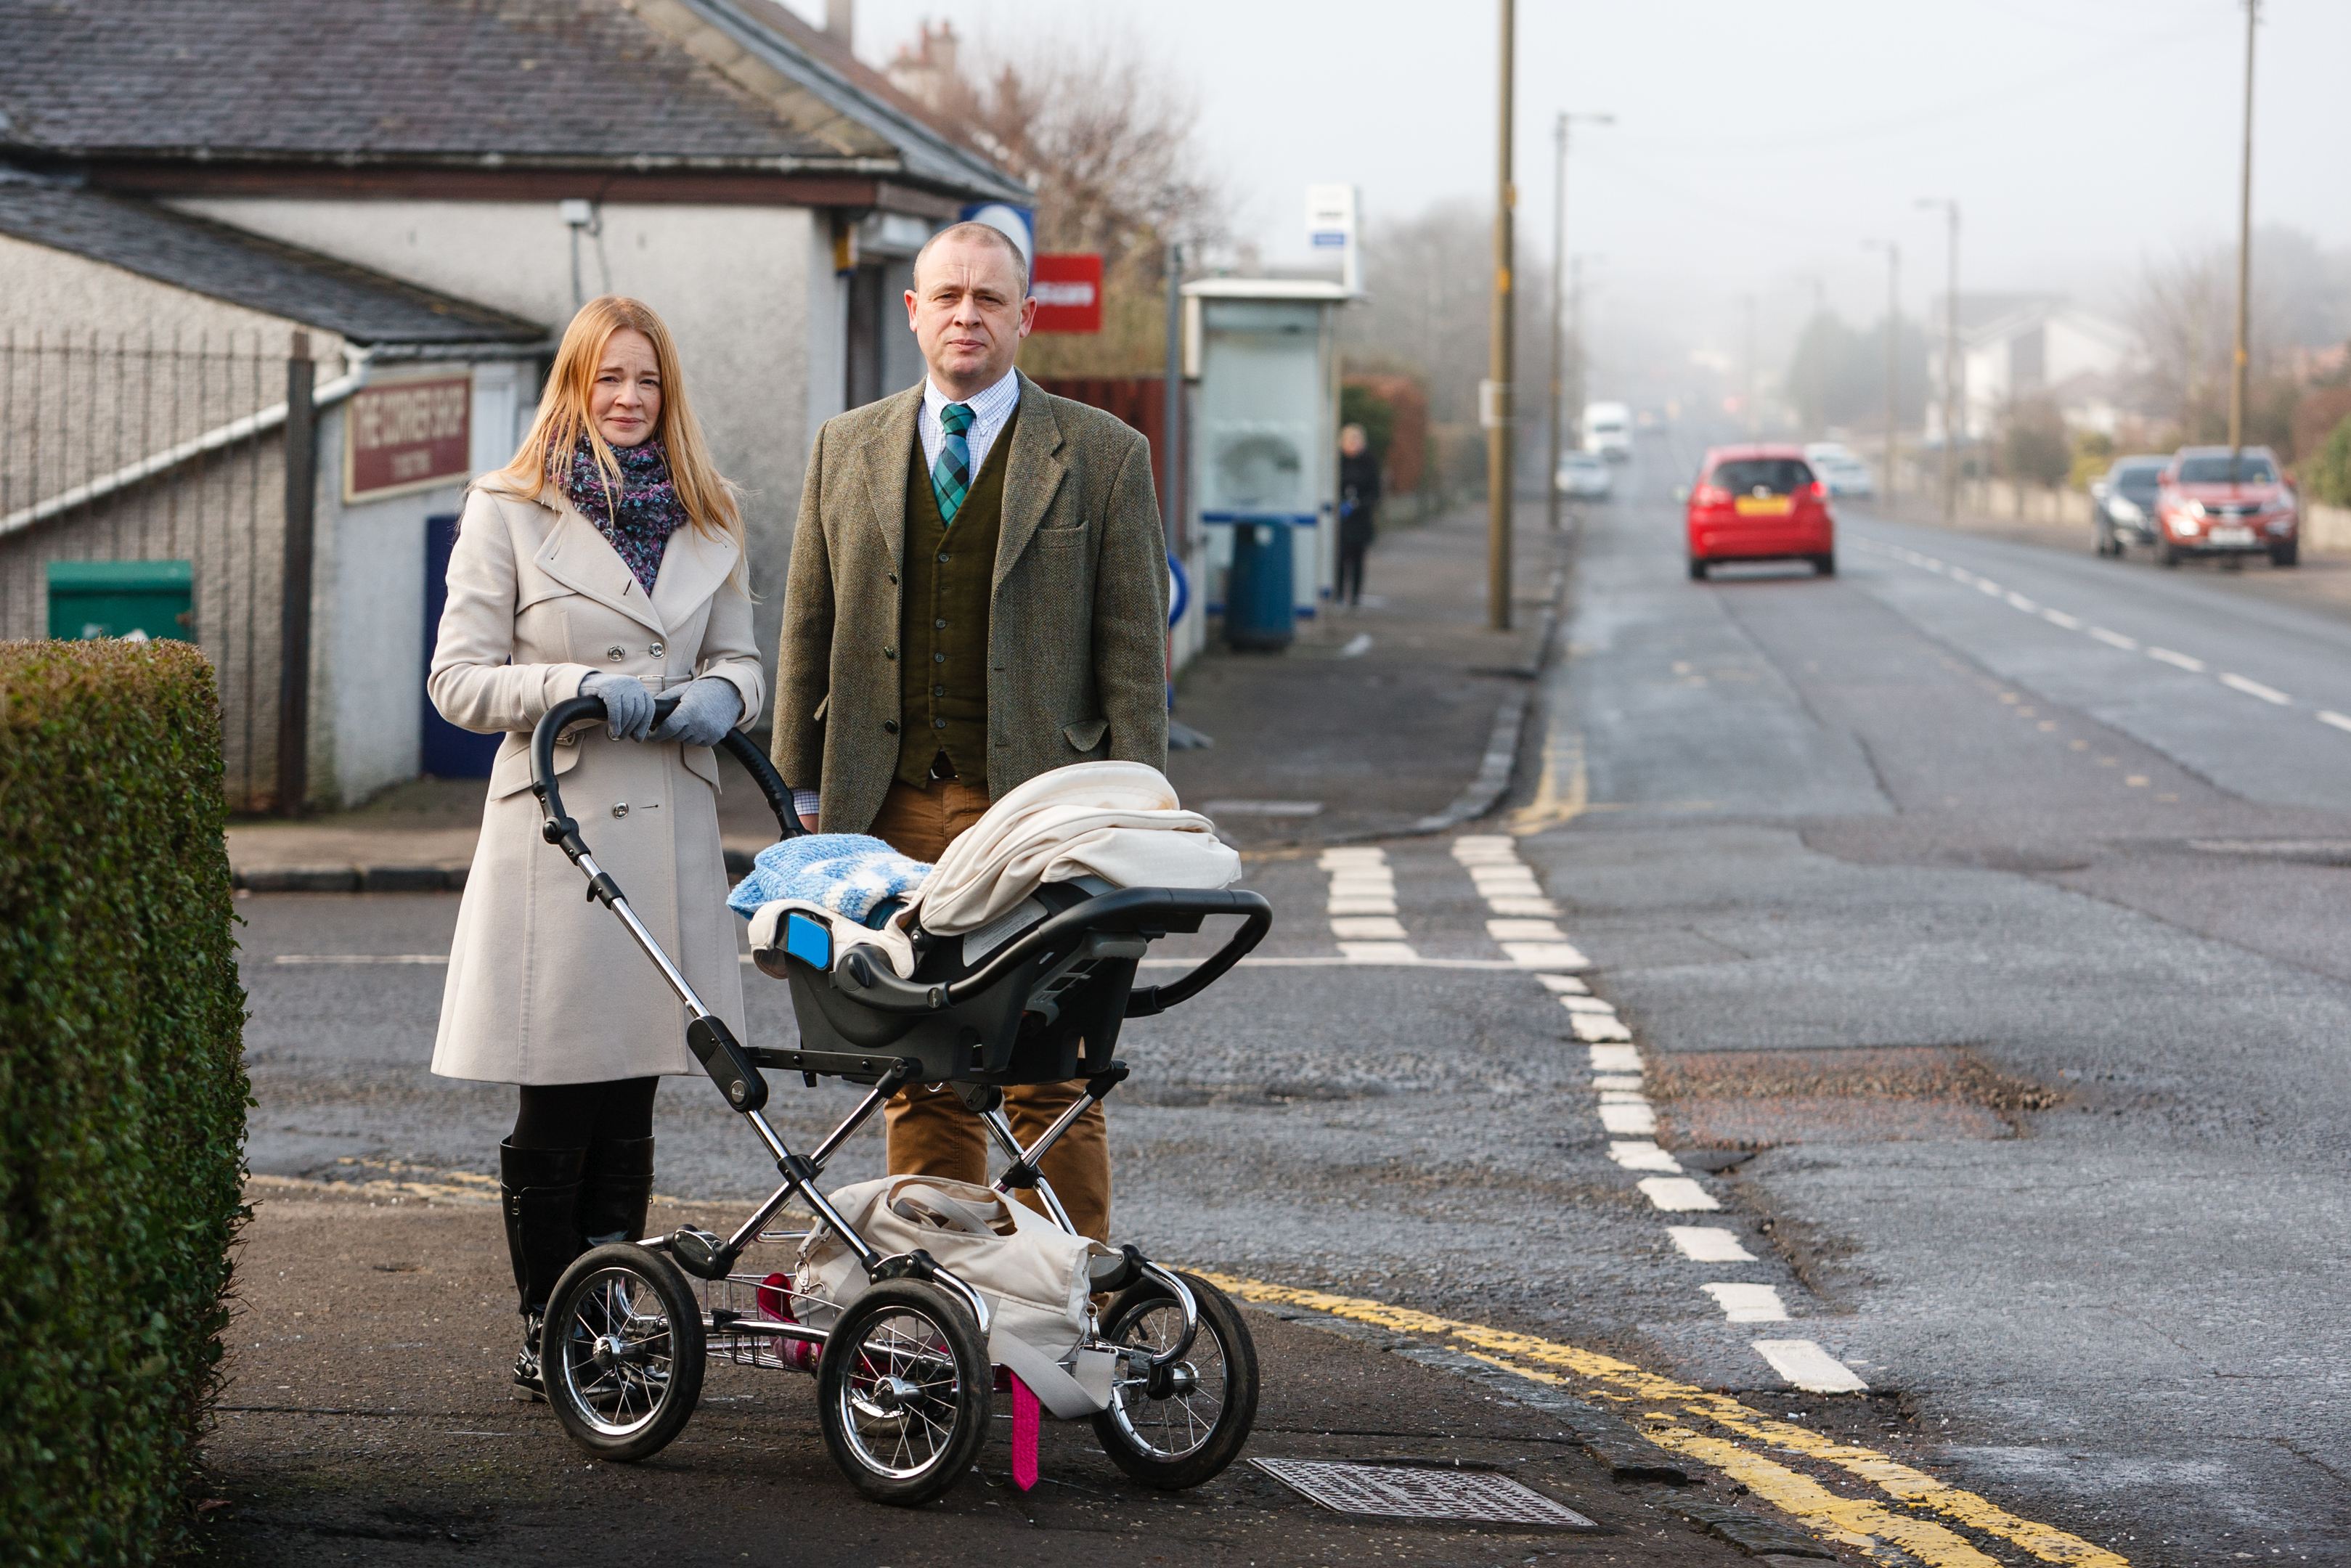 Both councillors believe parents' safety concerns are being addressed.